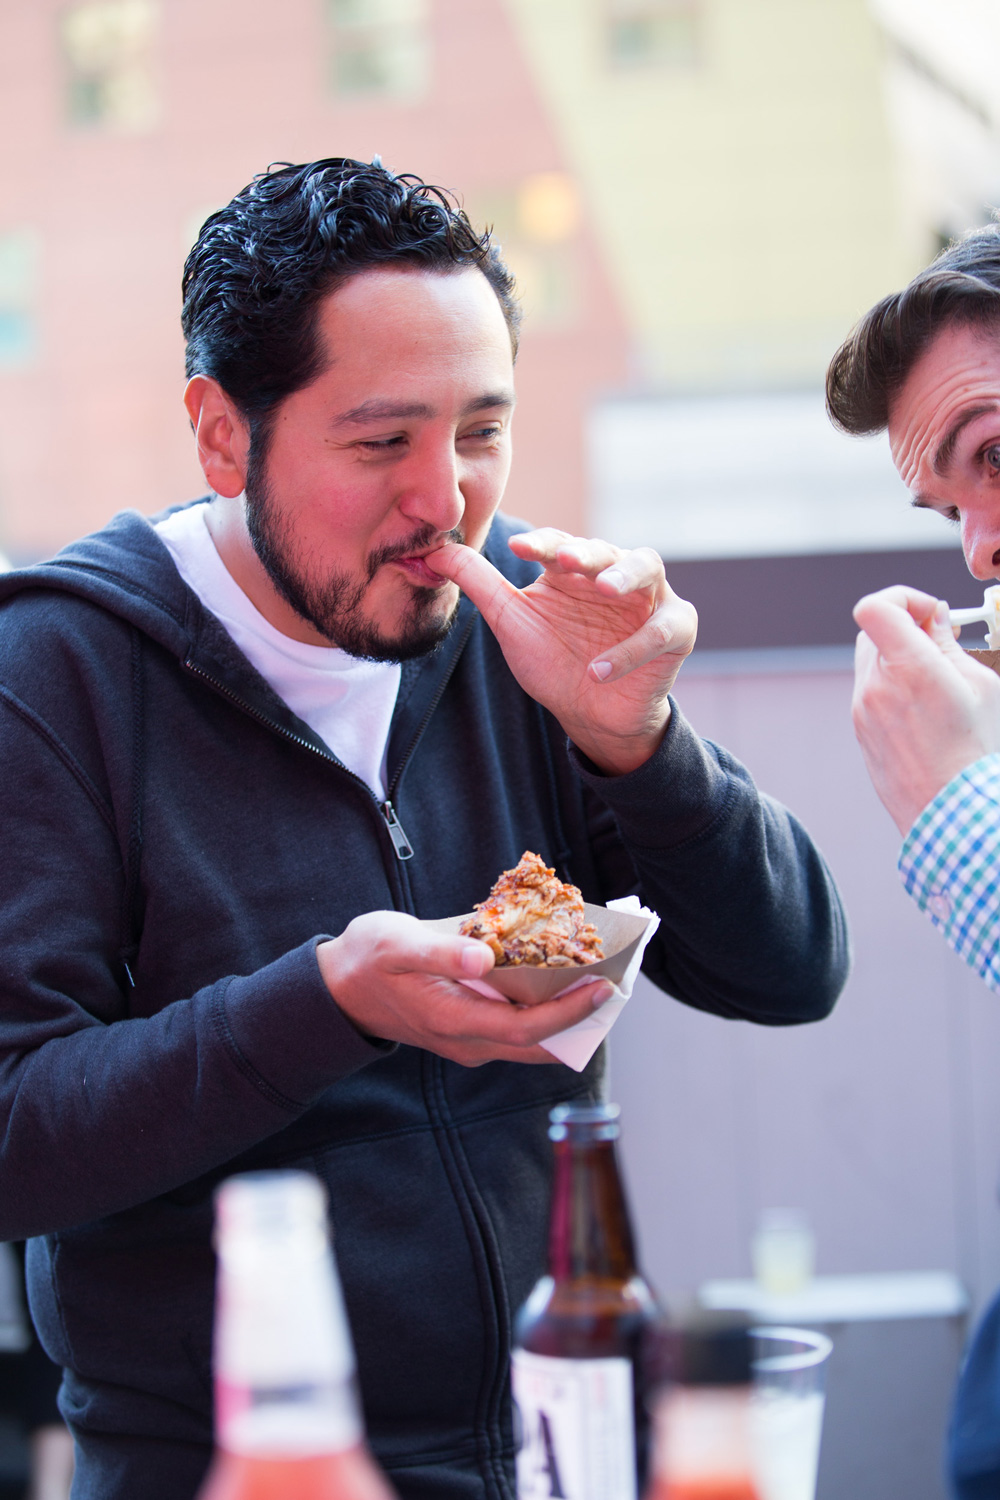 ny-food-film-fest-fried-chicken-eating.jpg